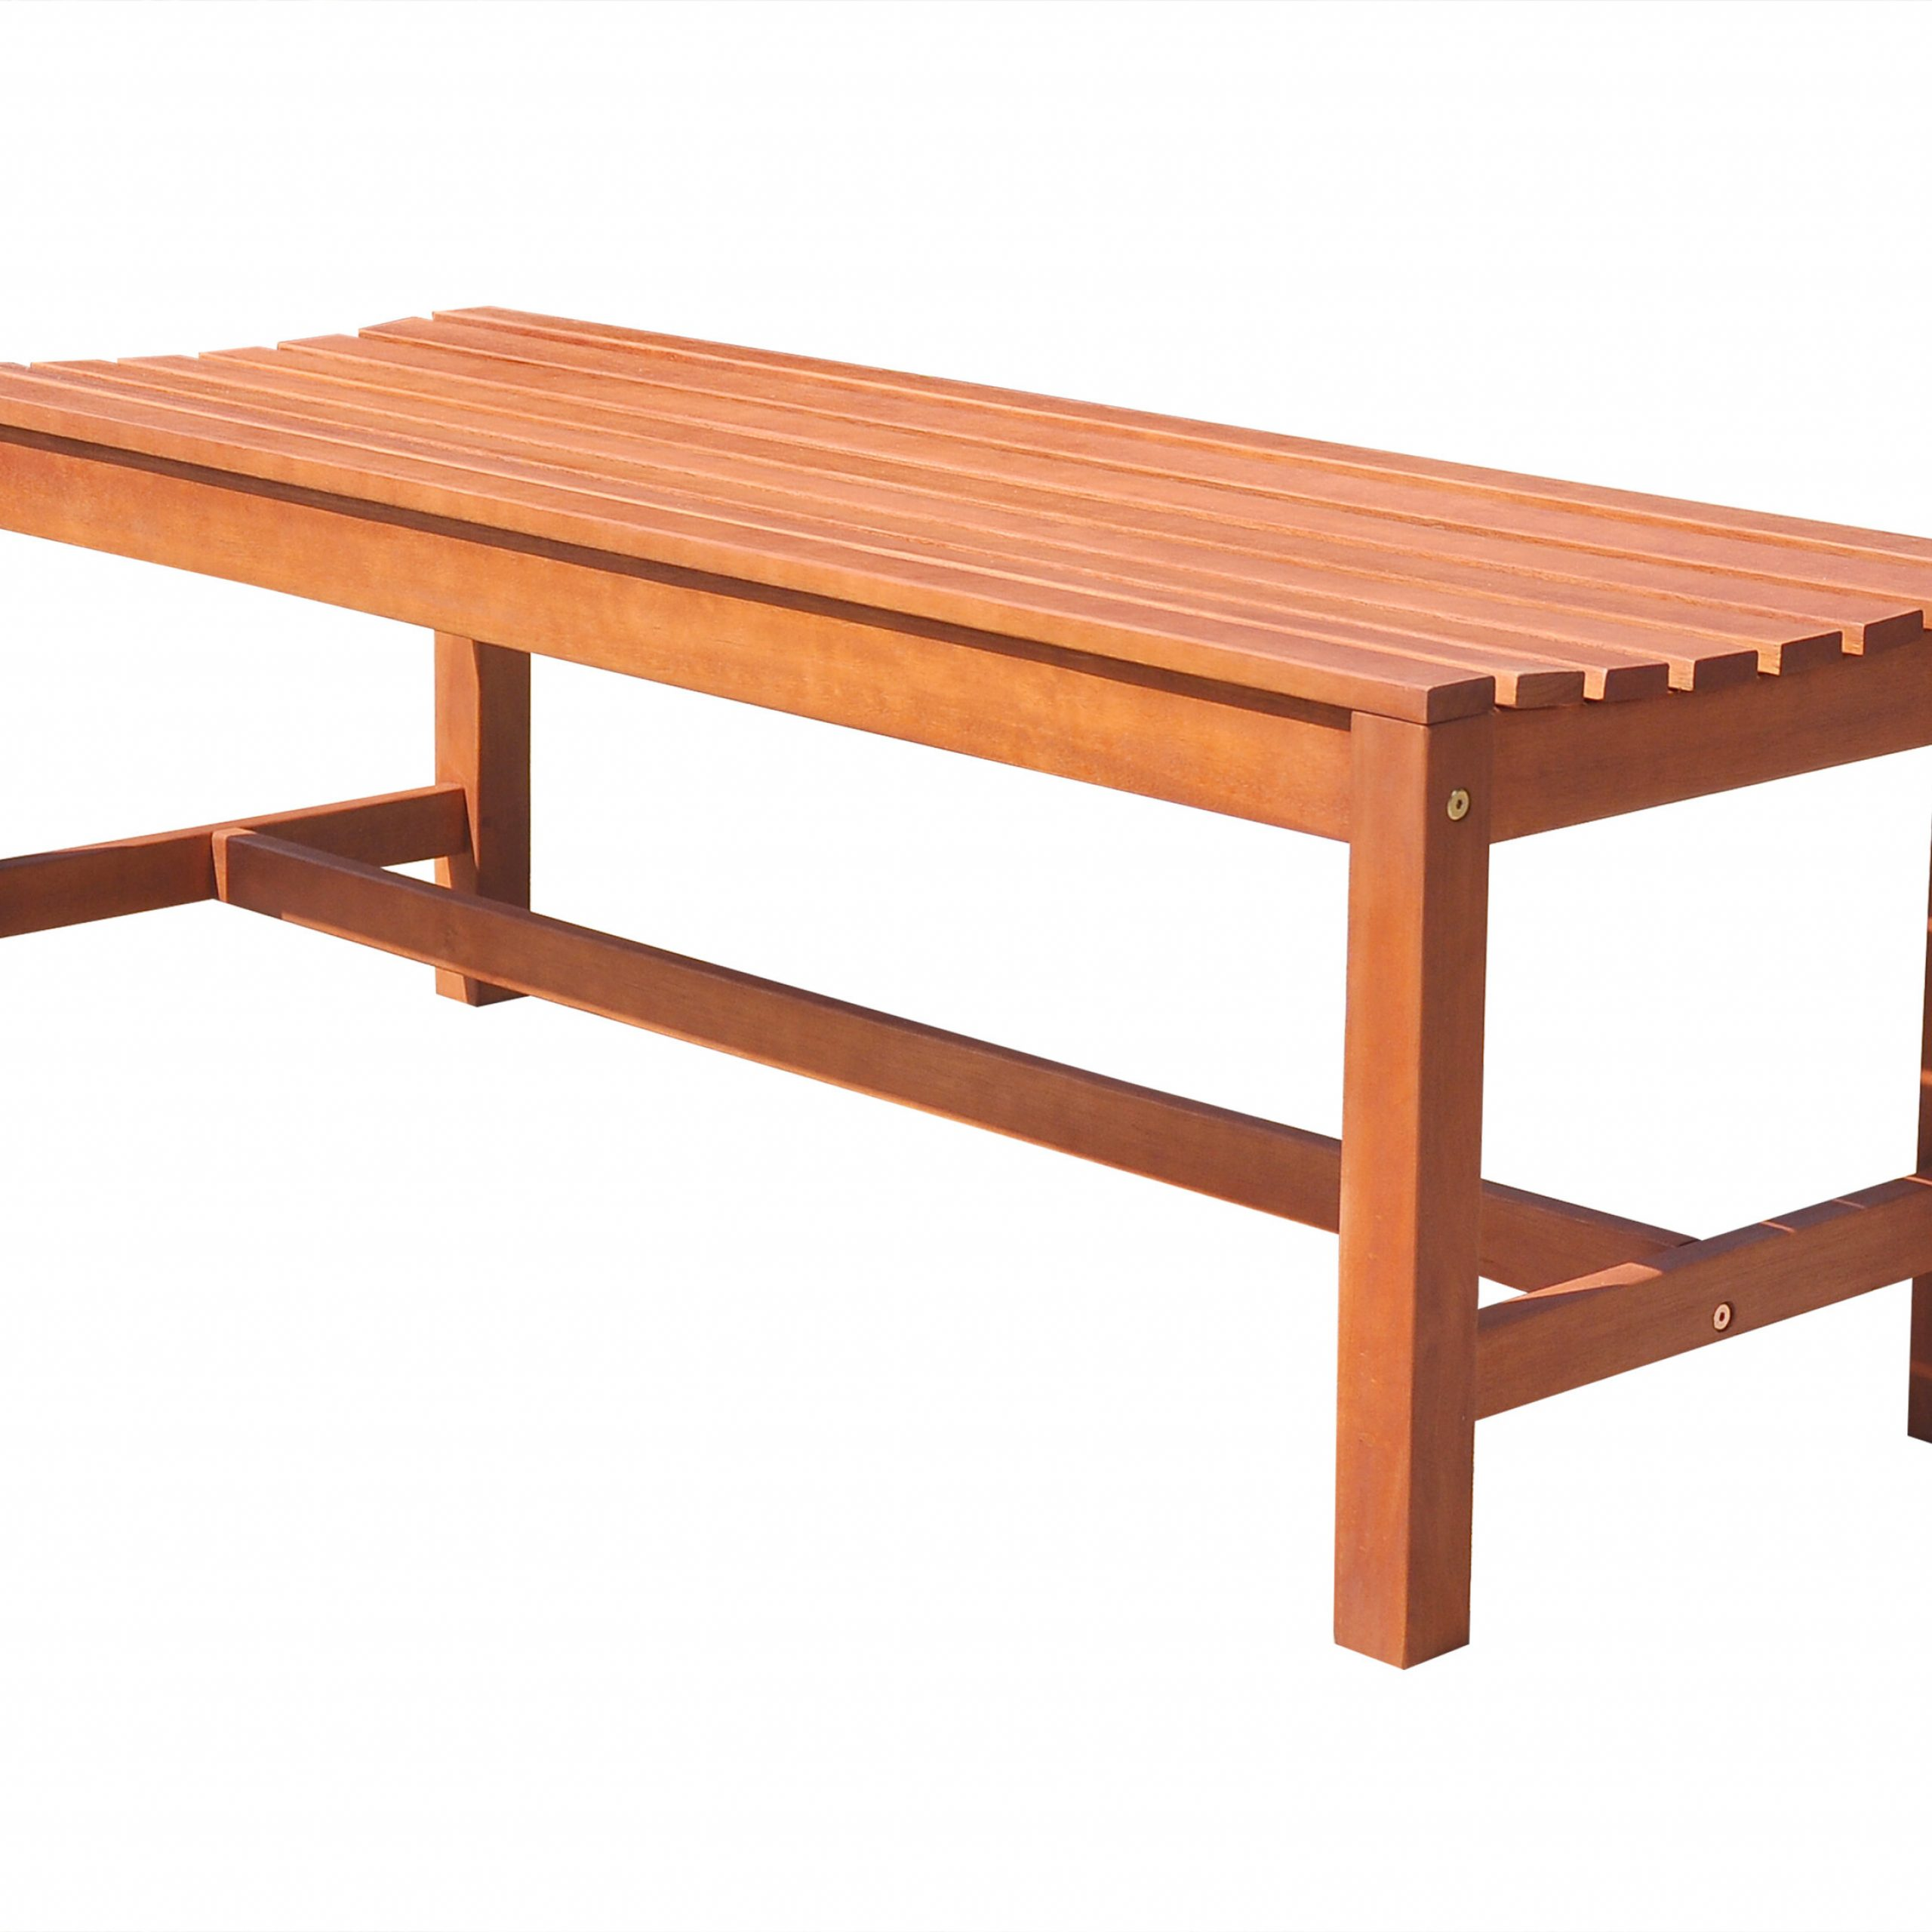 Amabel Wooden Outdoor Picnic Bench For Amabel Wooden Garden Benches (View 8 of 25)